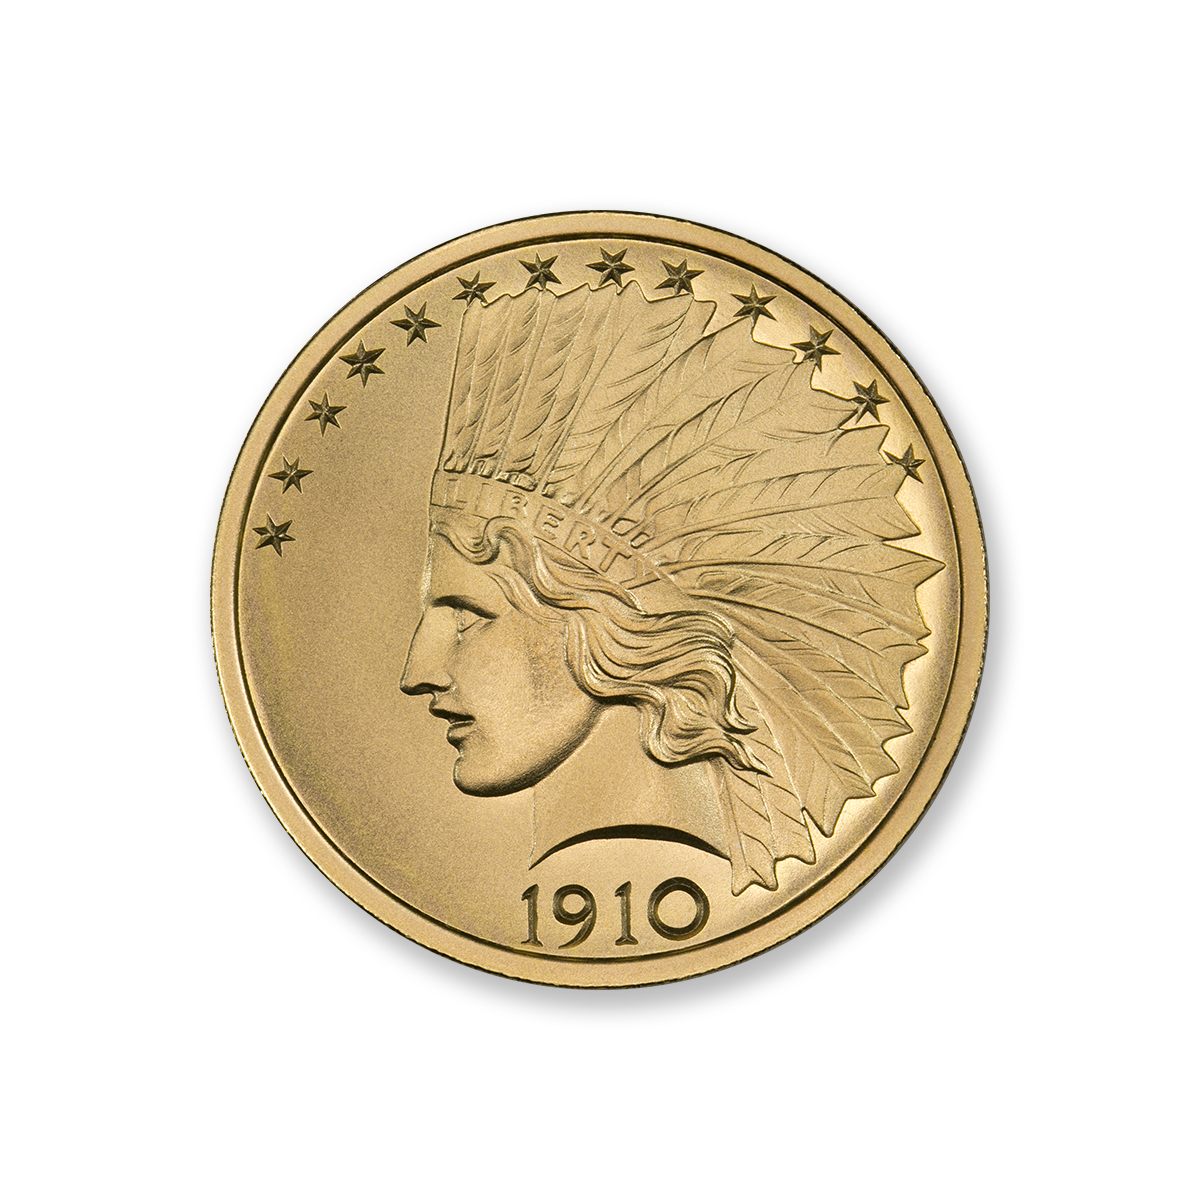 $10 INDIAN TRIBUTE – 2 TROY OUNCE – 39MM – .9999 FINE GOLD